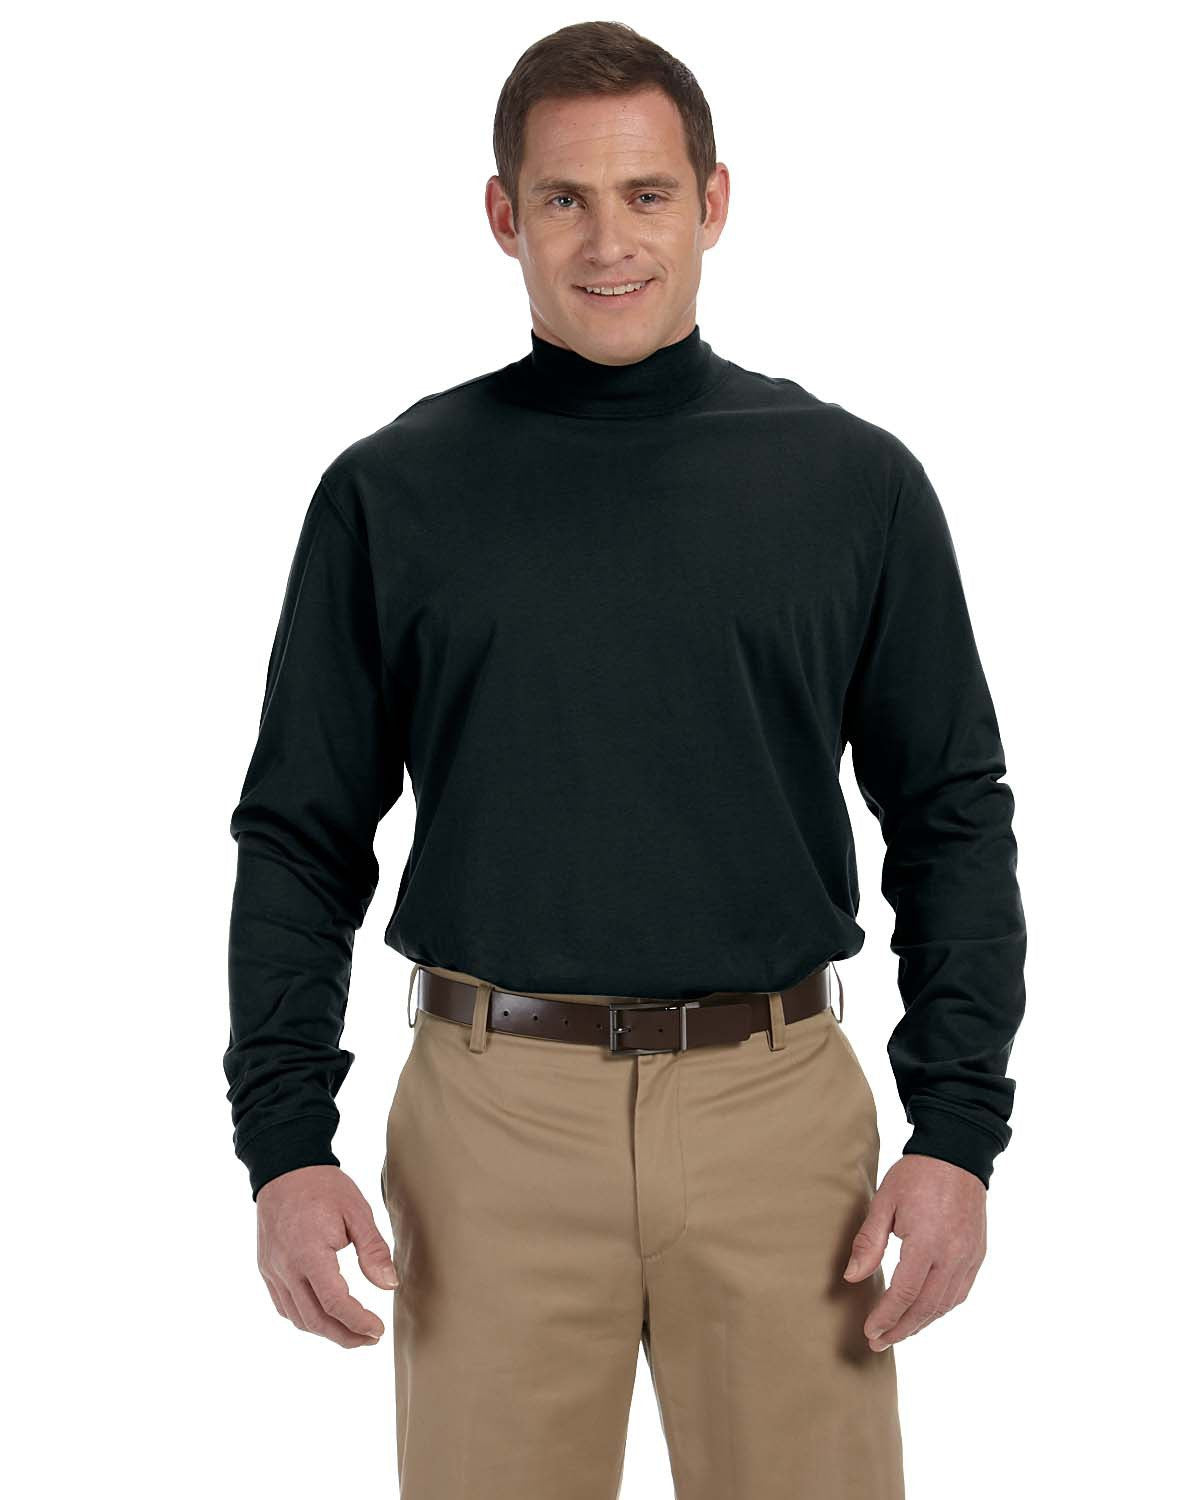 Mock Turtleneck by Devon and Jones - Discountedrack.com